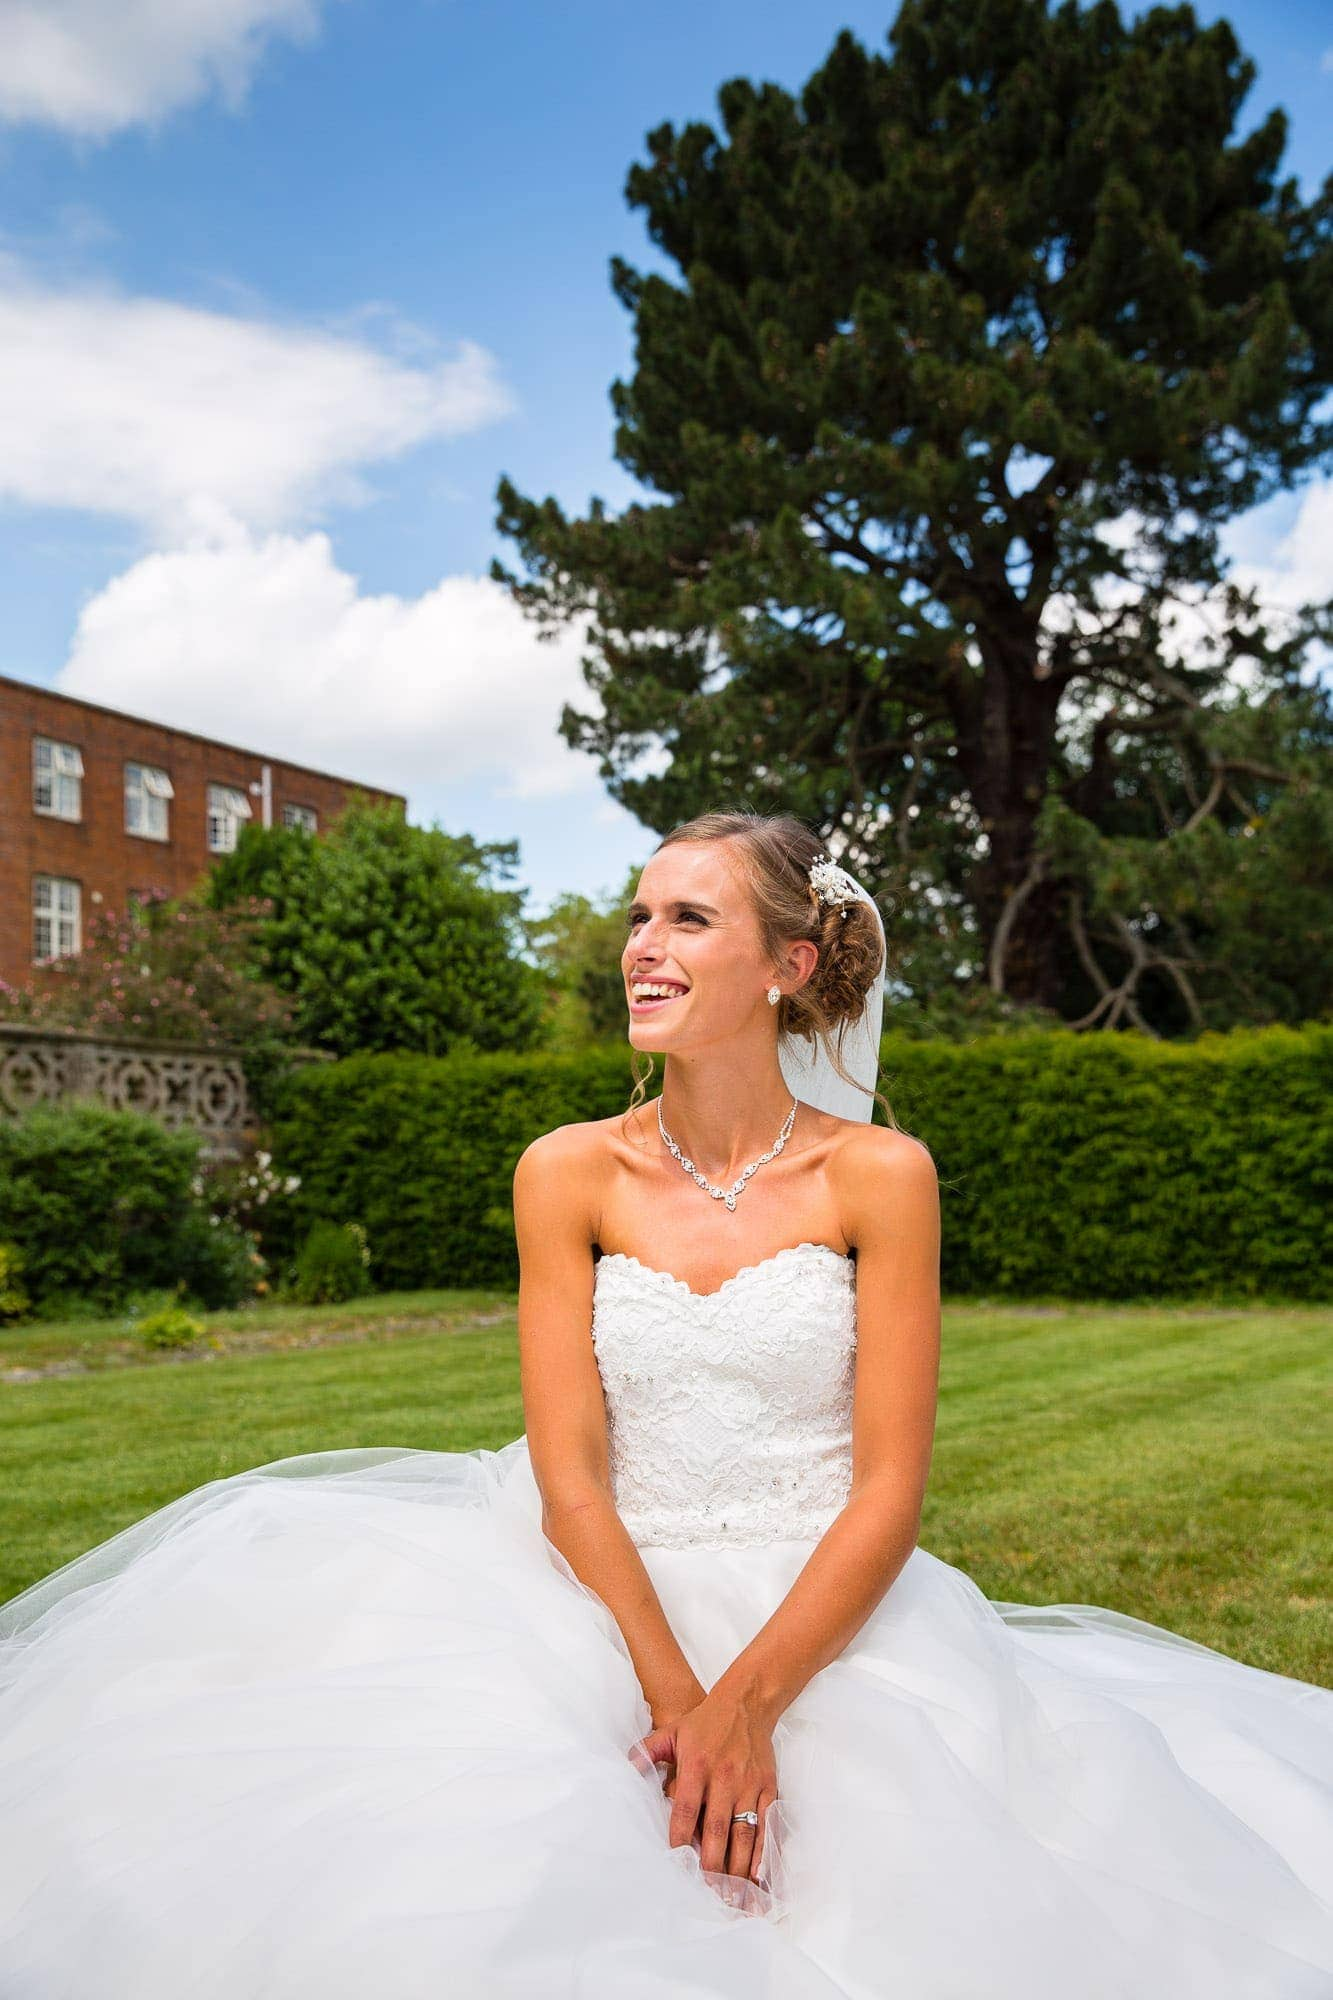 Easthampstead Park Wedding 52 6470